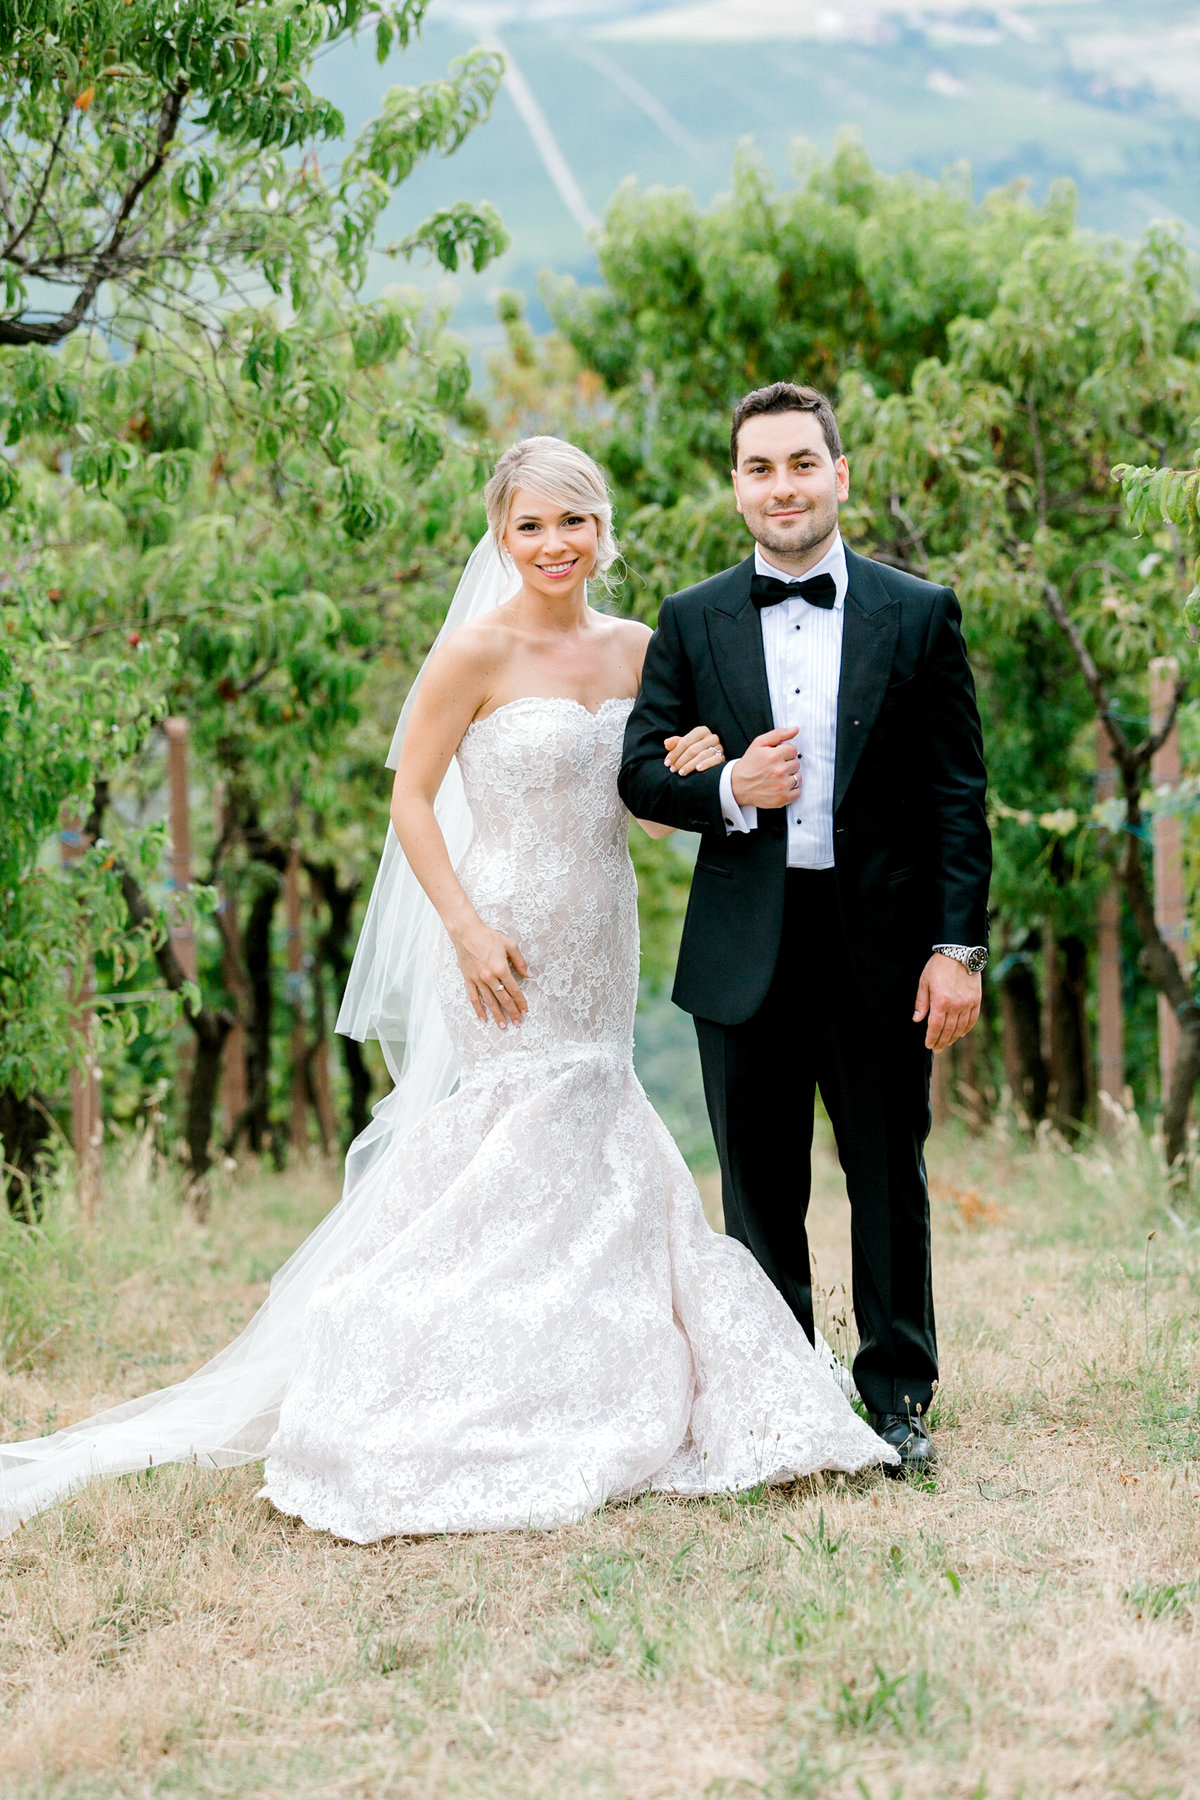 Destination-Vineyard-Italian-Wedding-New-York-Photographer-Jessica-Haley-Photo-54